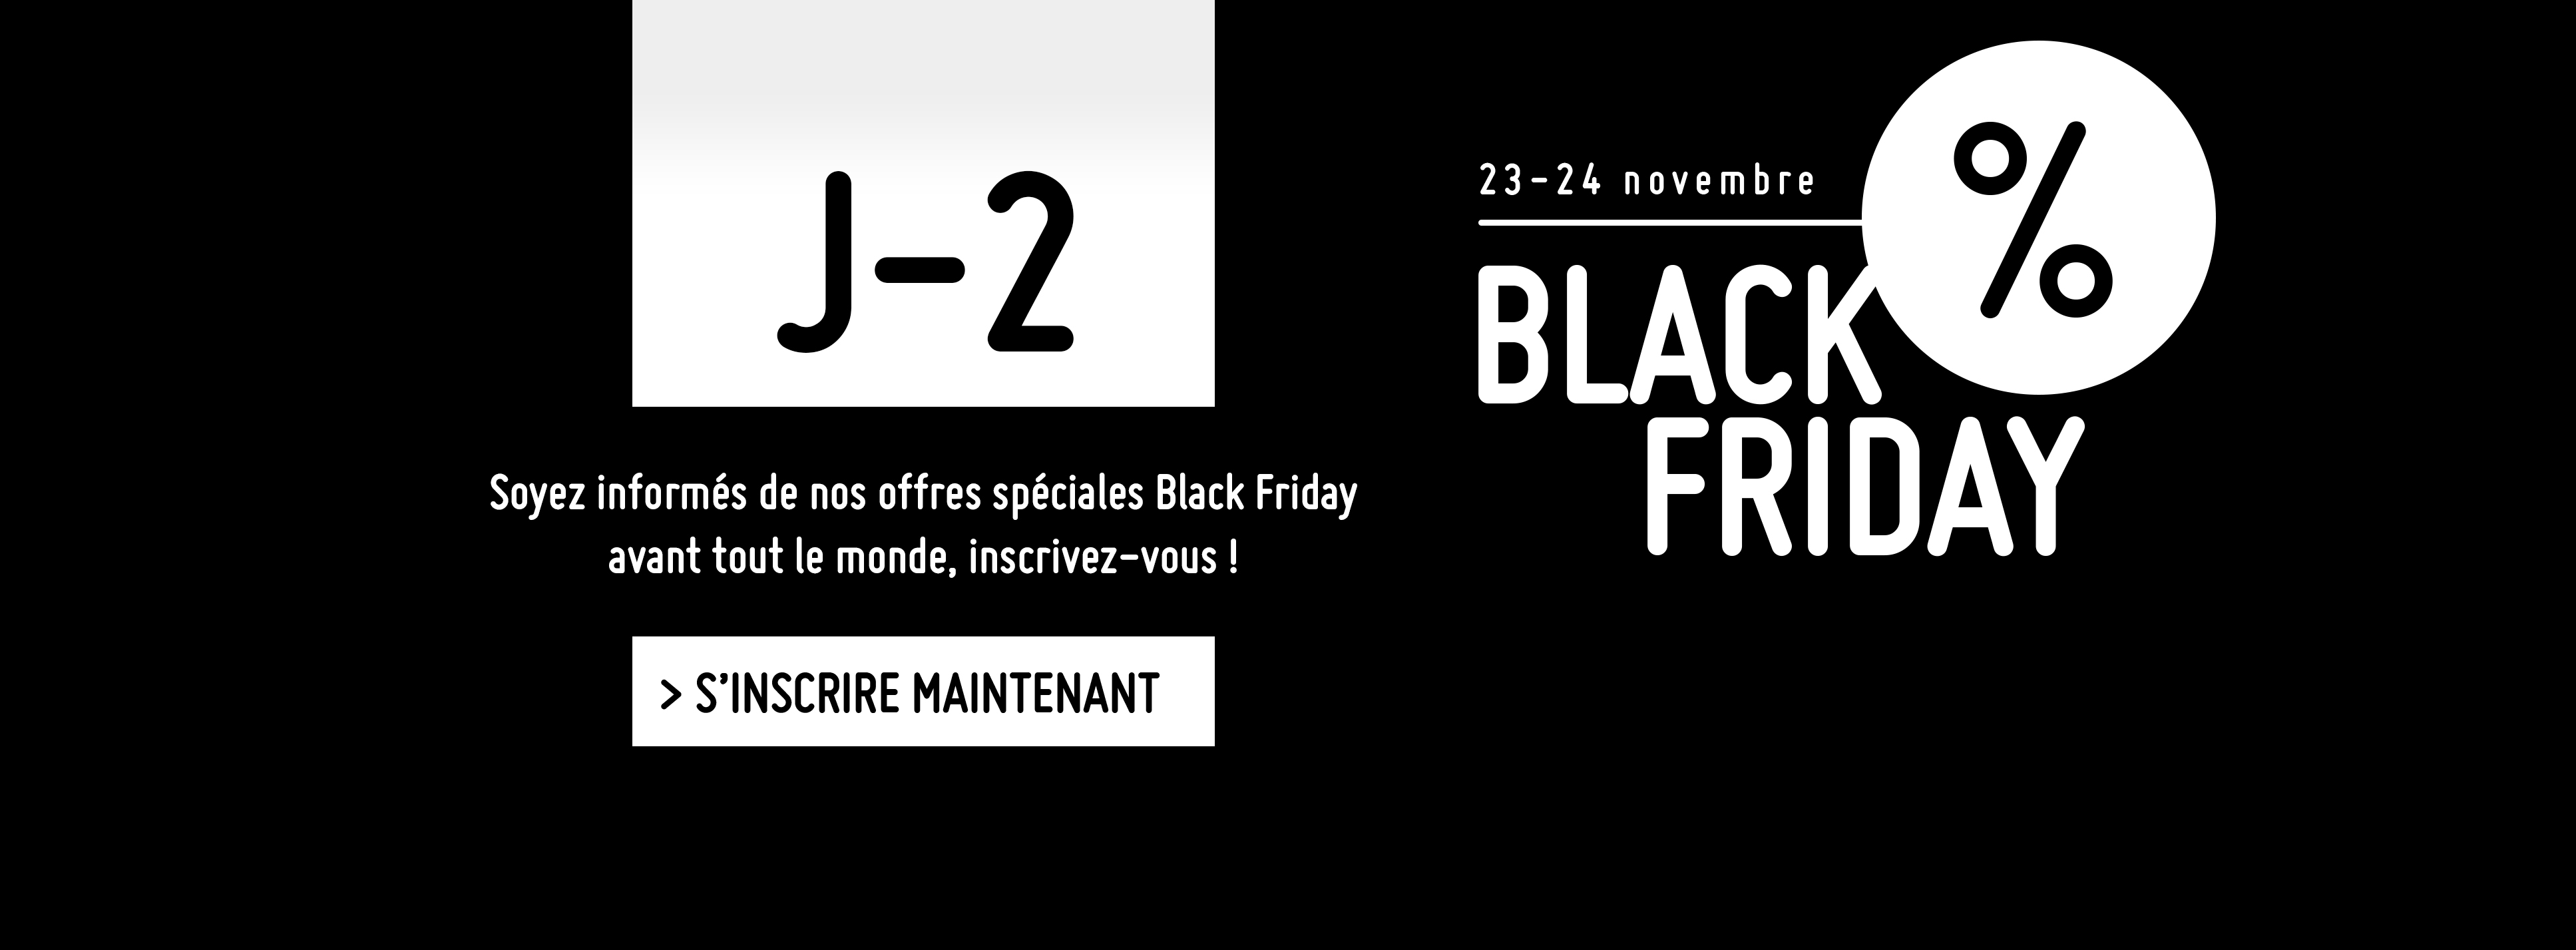 Banner_Black_Friday_J-2